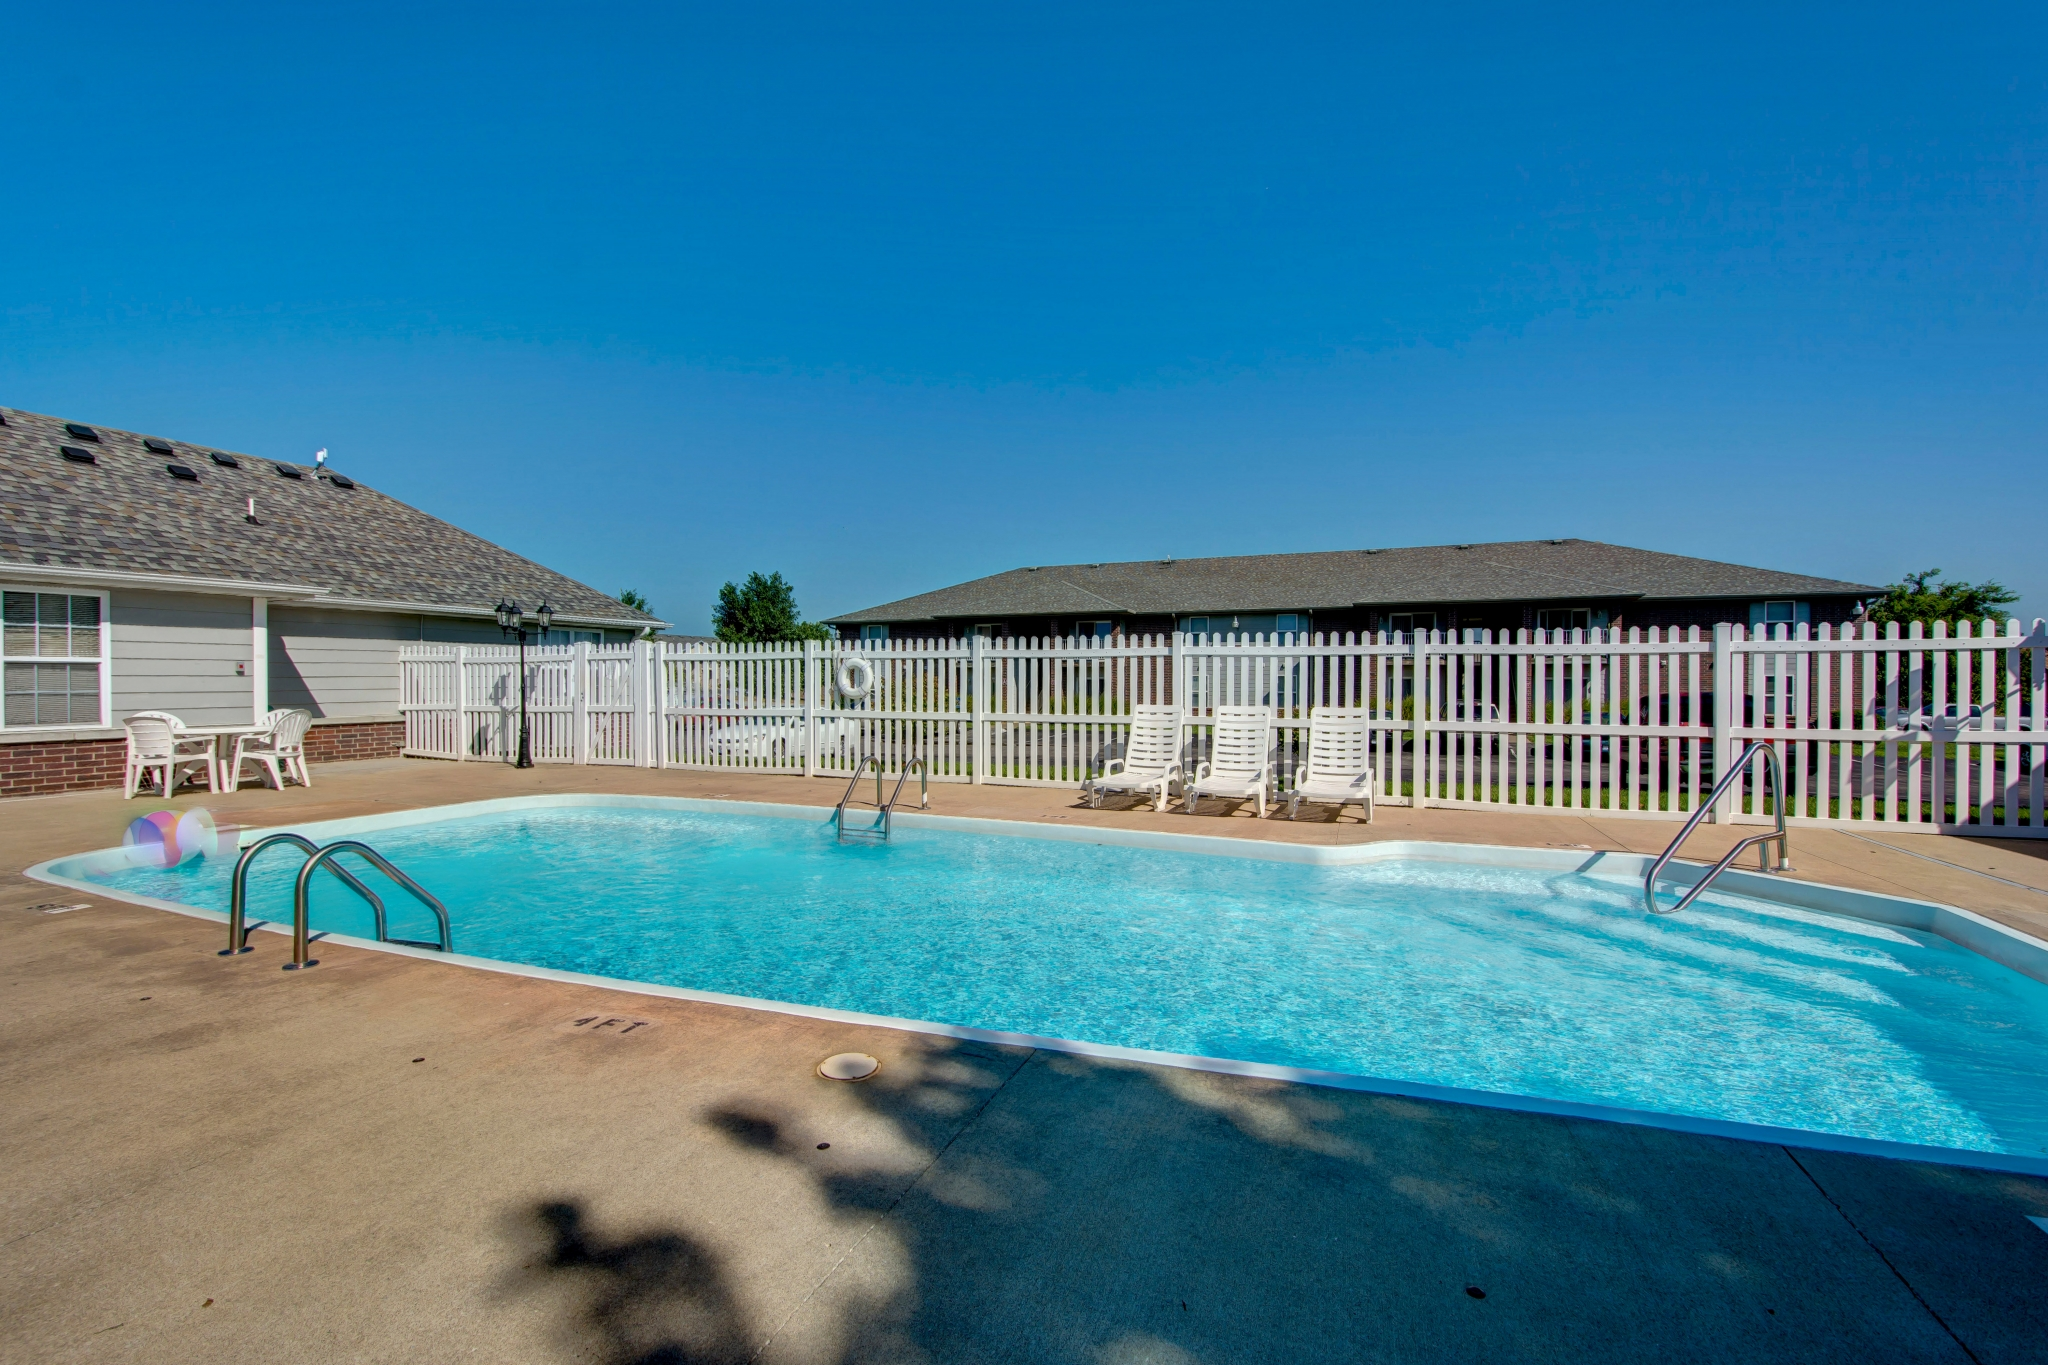 Cambridge Park Apartments amenity outdoor swimming pool